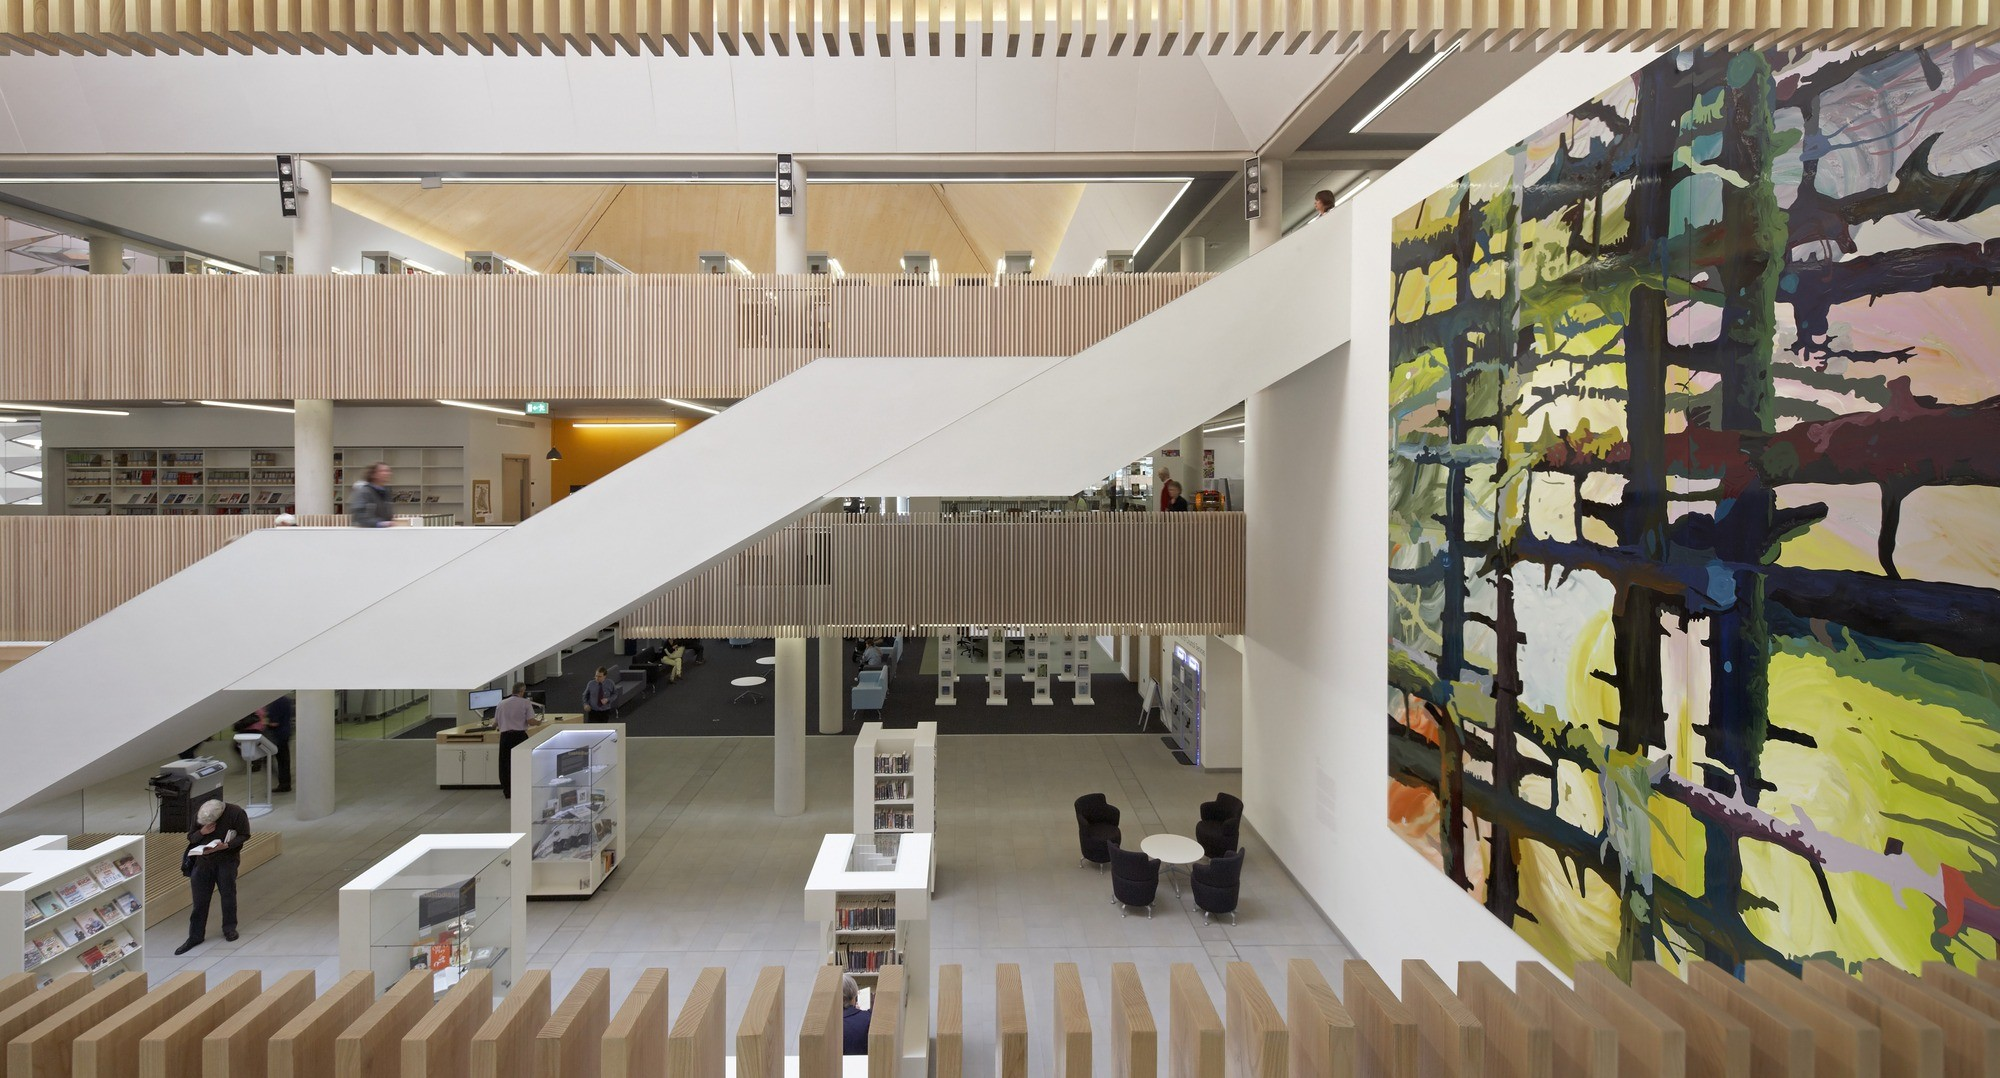 RIBA Considers 'Test of Time' Award, Clegg's own project, The Hive, has won a RIBA award this year © Hufton + Crow